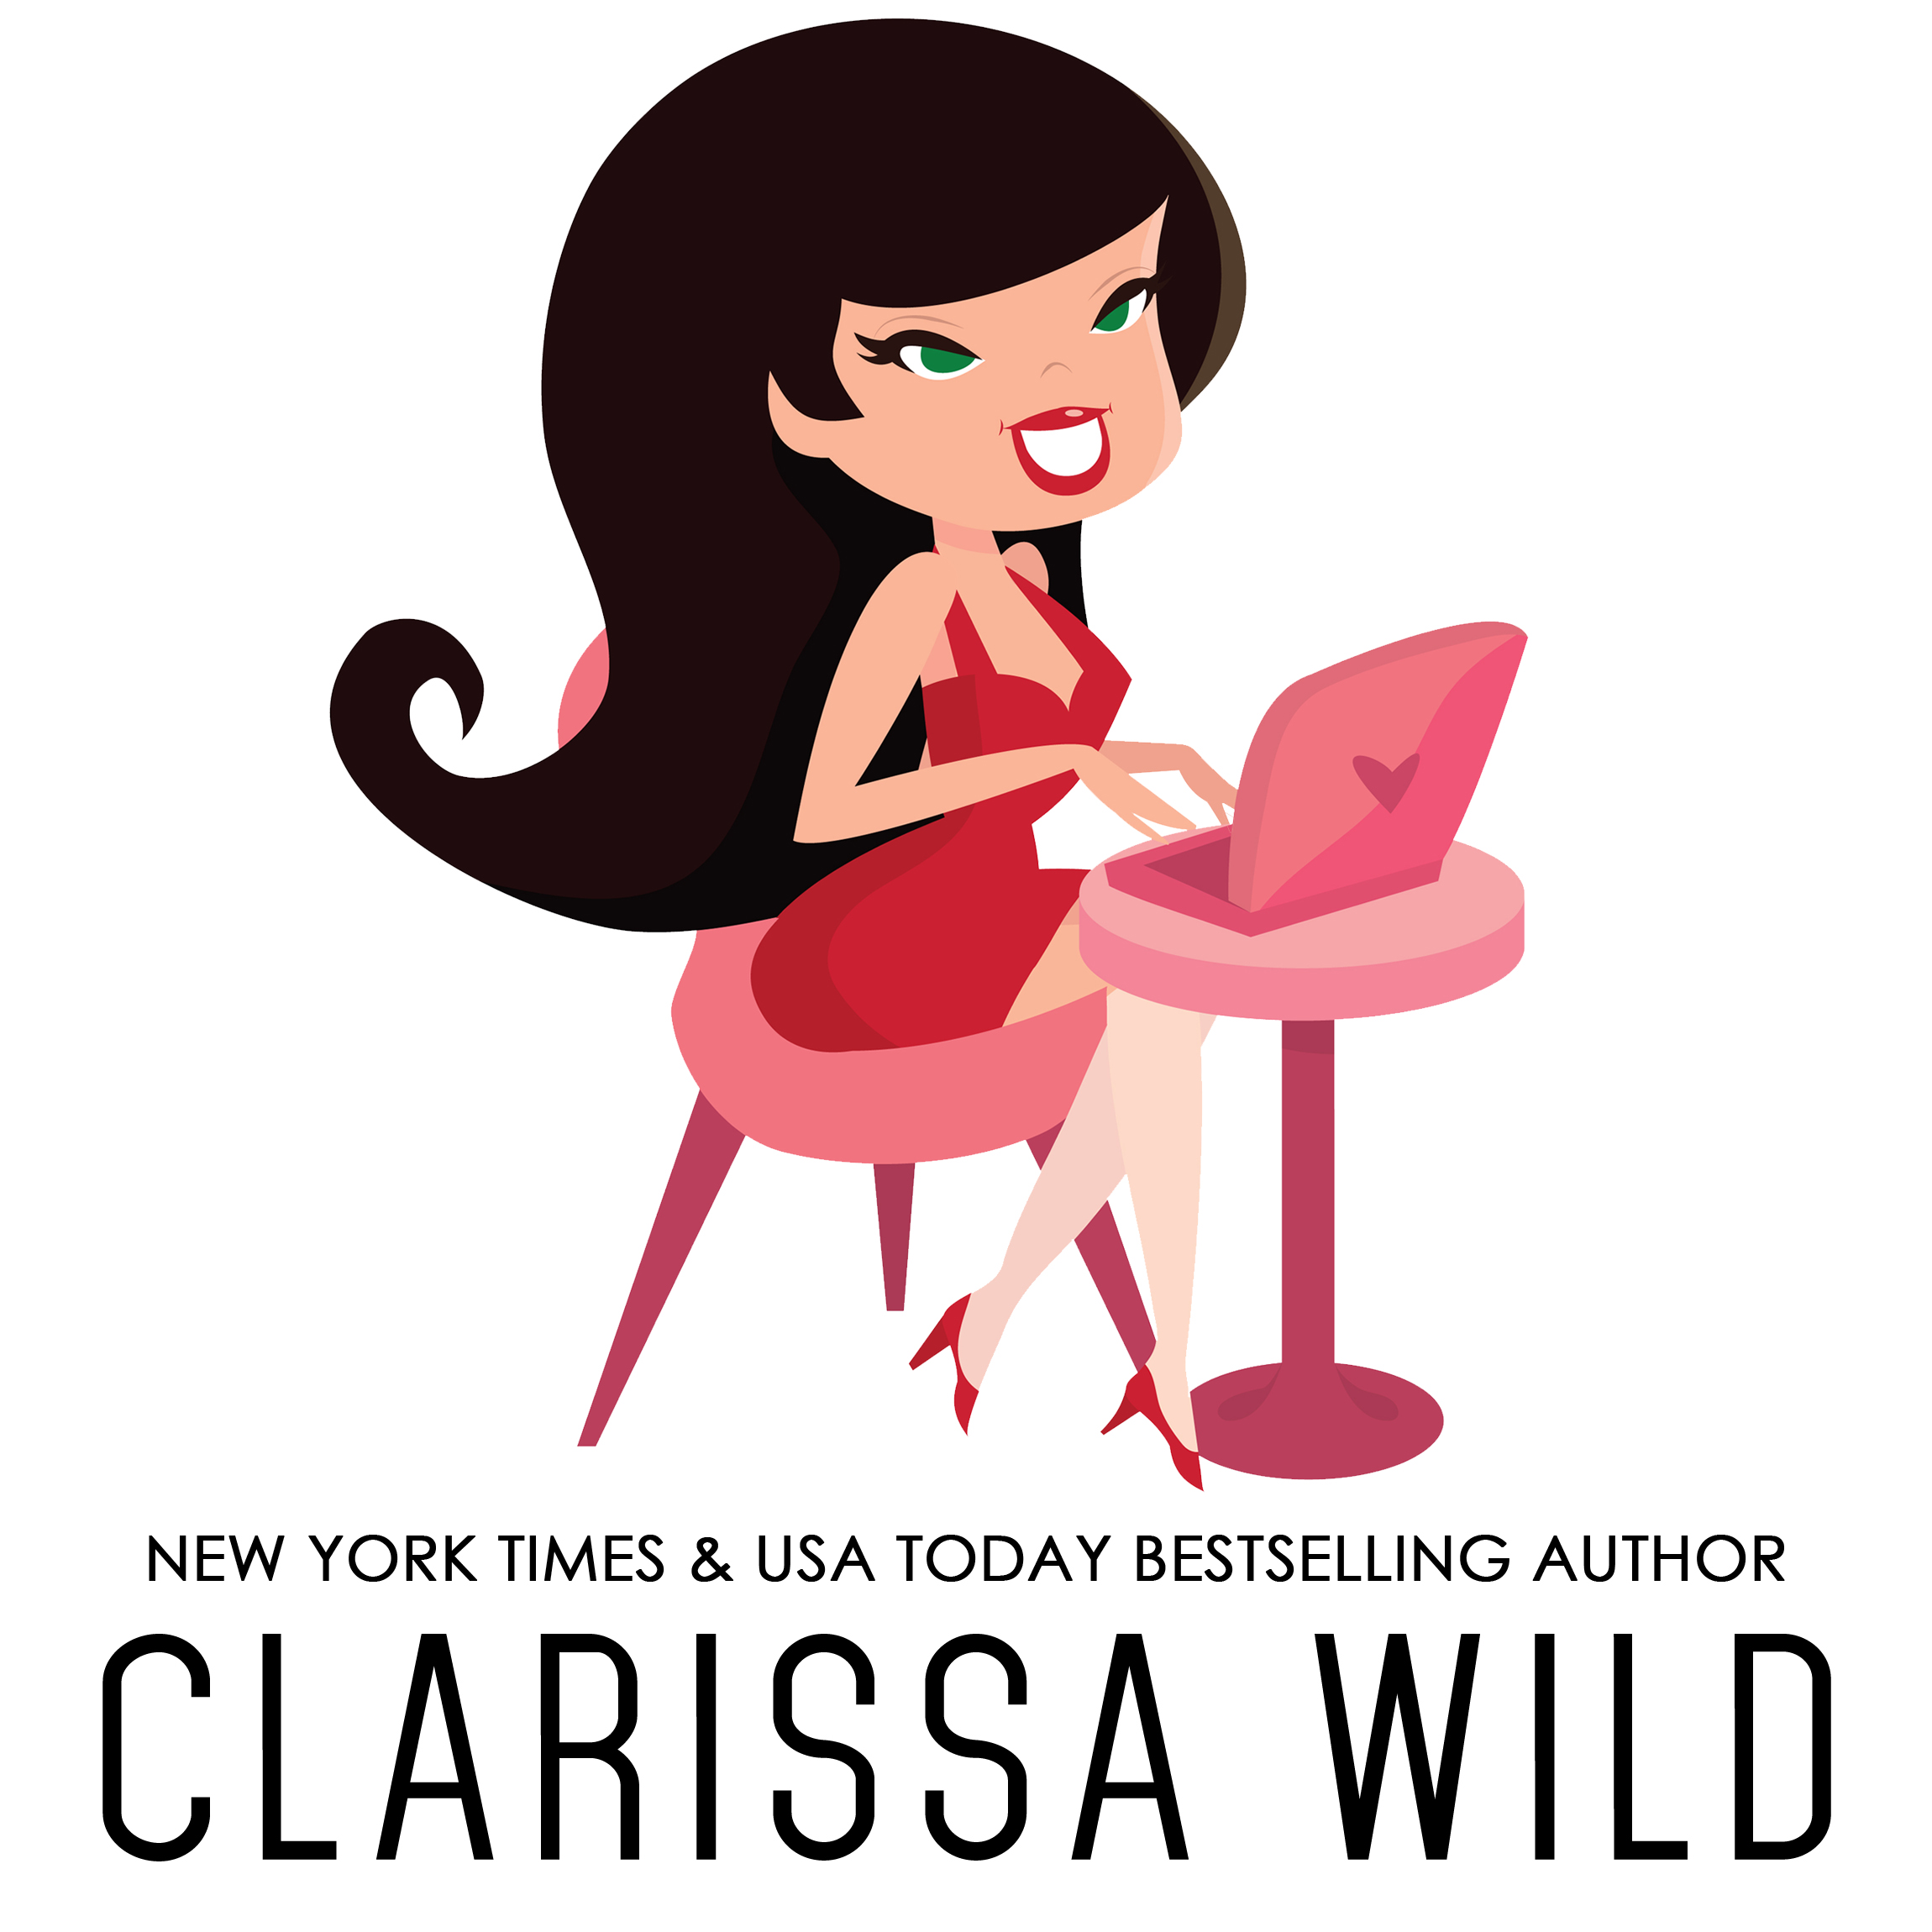 Author Clarissa Wild